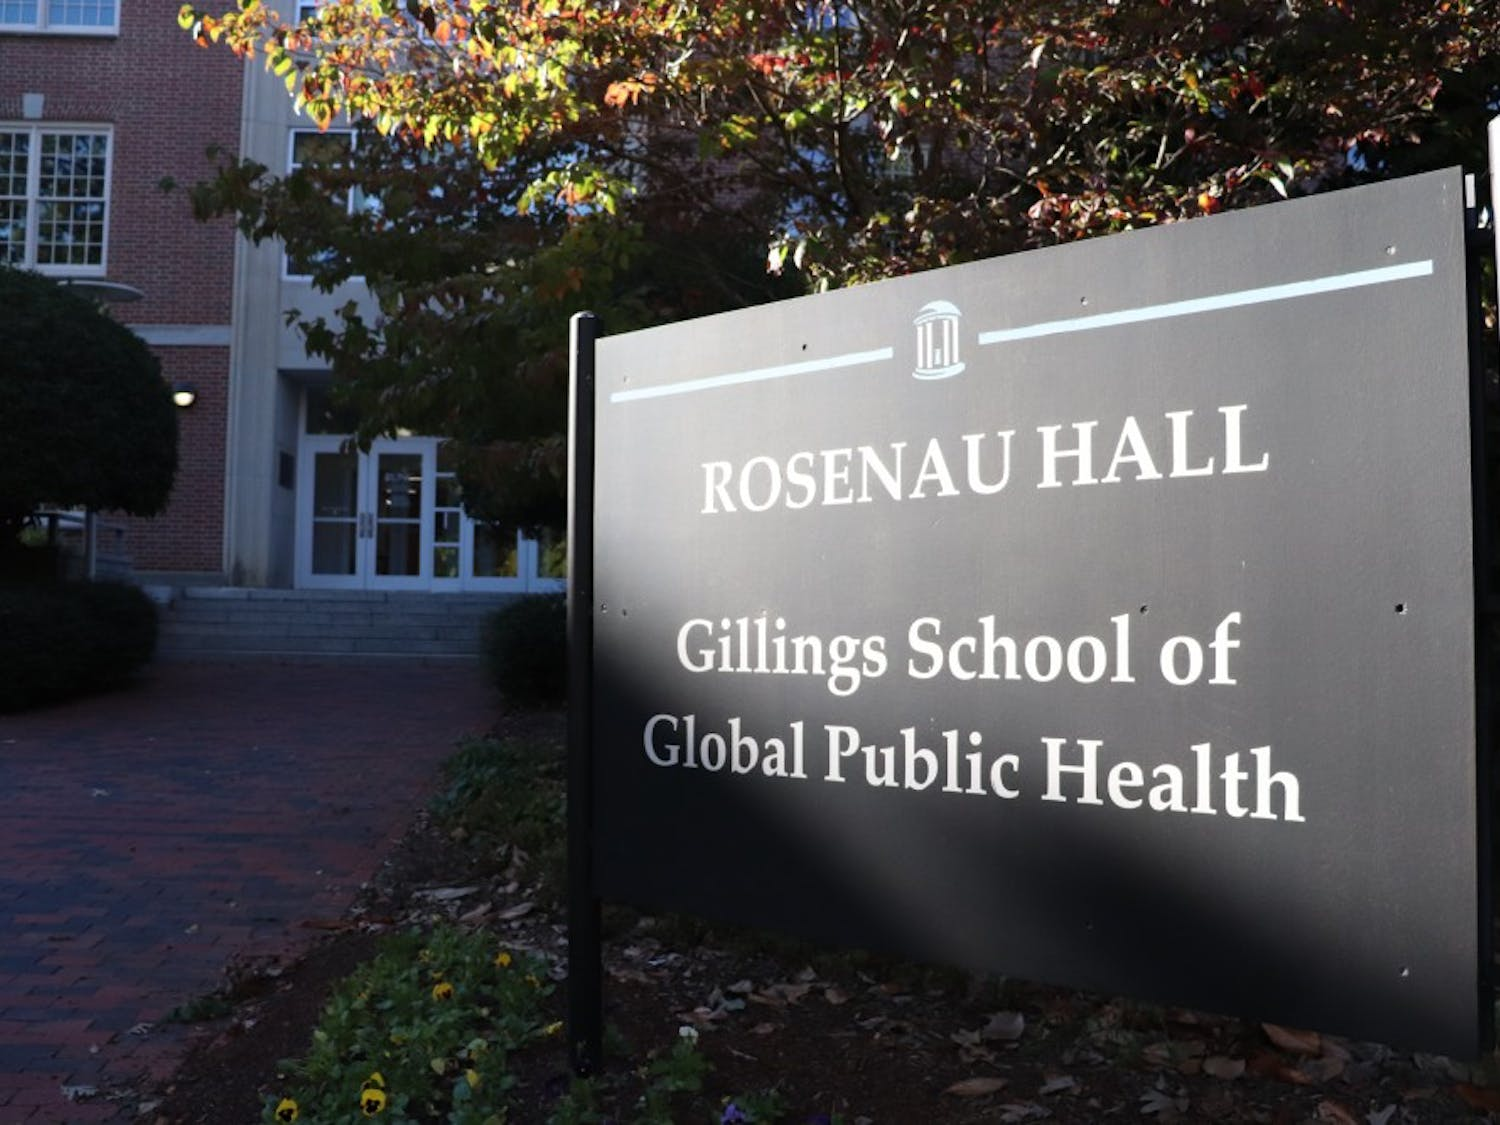 A Master of Public Health program is one of the many services that will be provided through a new academic health center building that is to open in Asheville through a partnership with the Mountain Area Health Education Center and UNC-Chapel Hill. The building is expected to be completed in spring 2019.